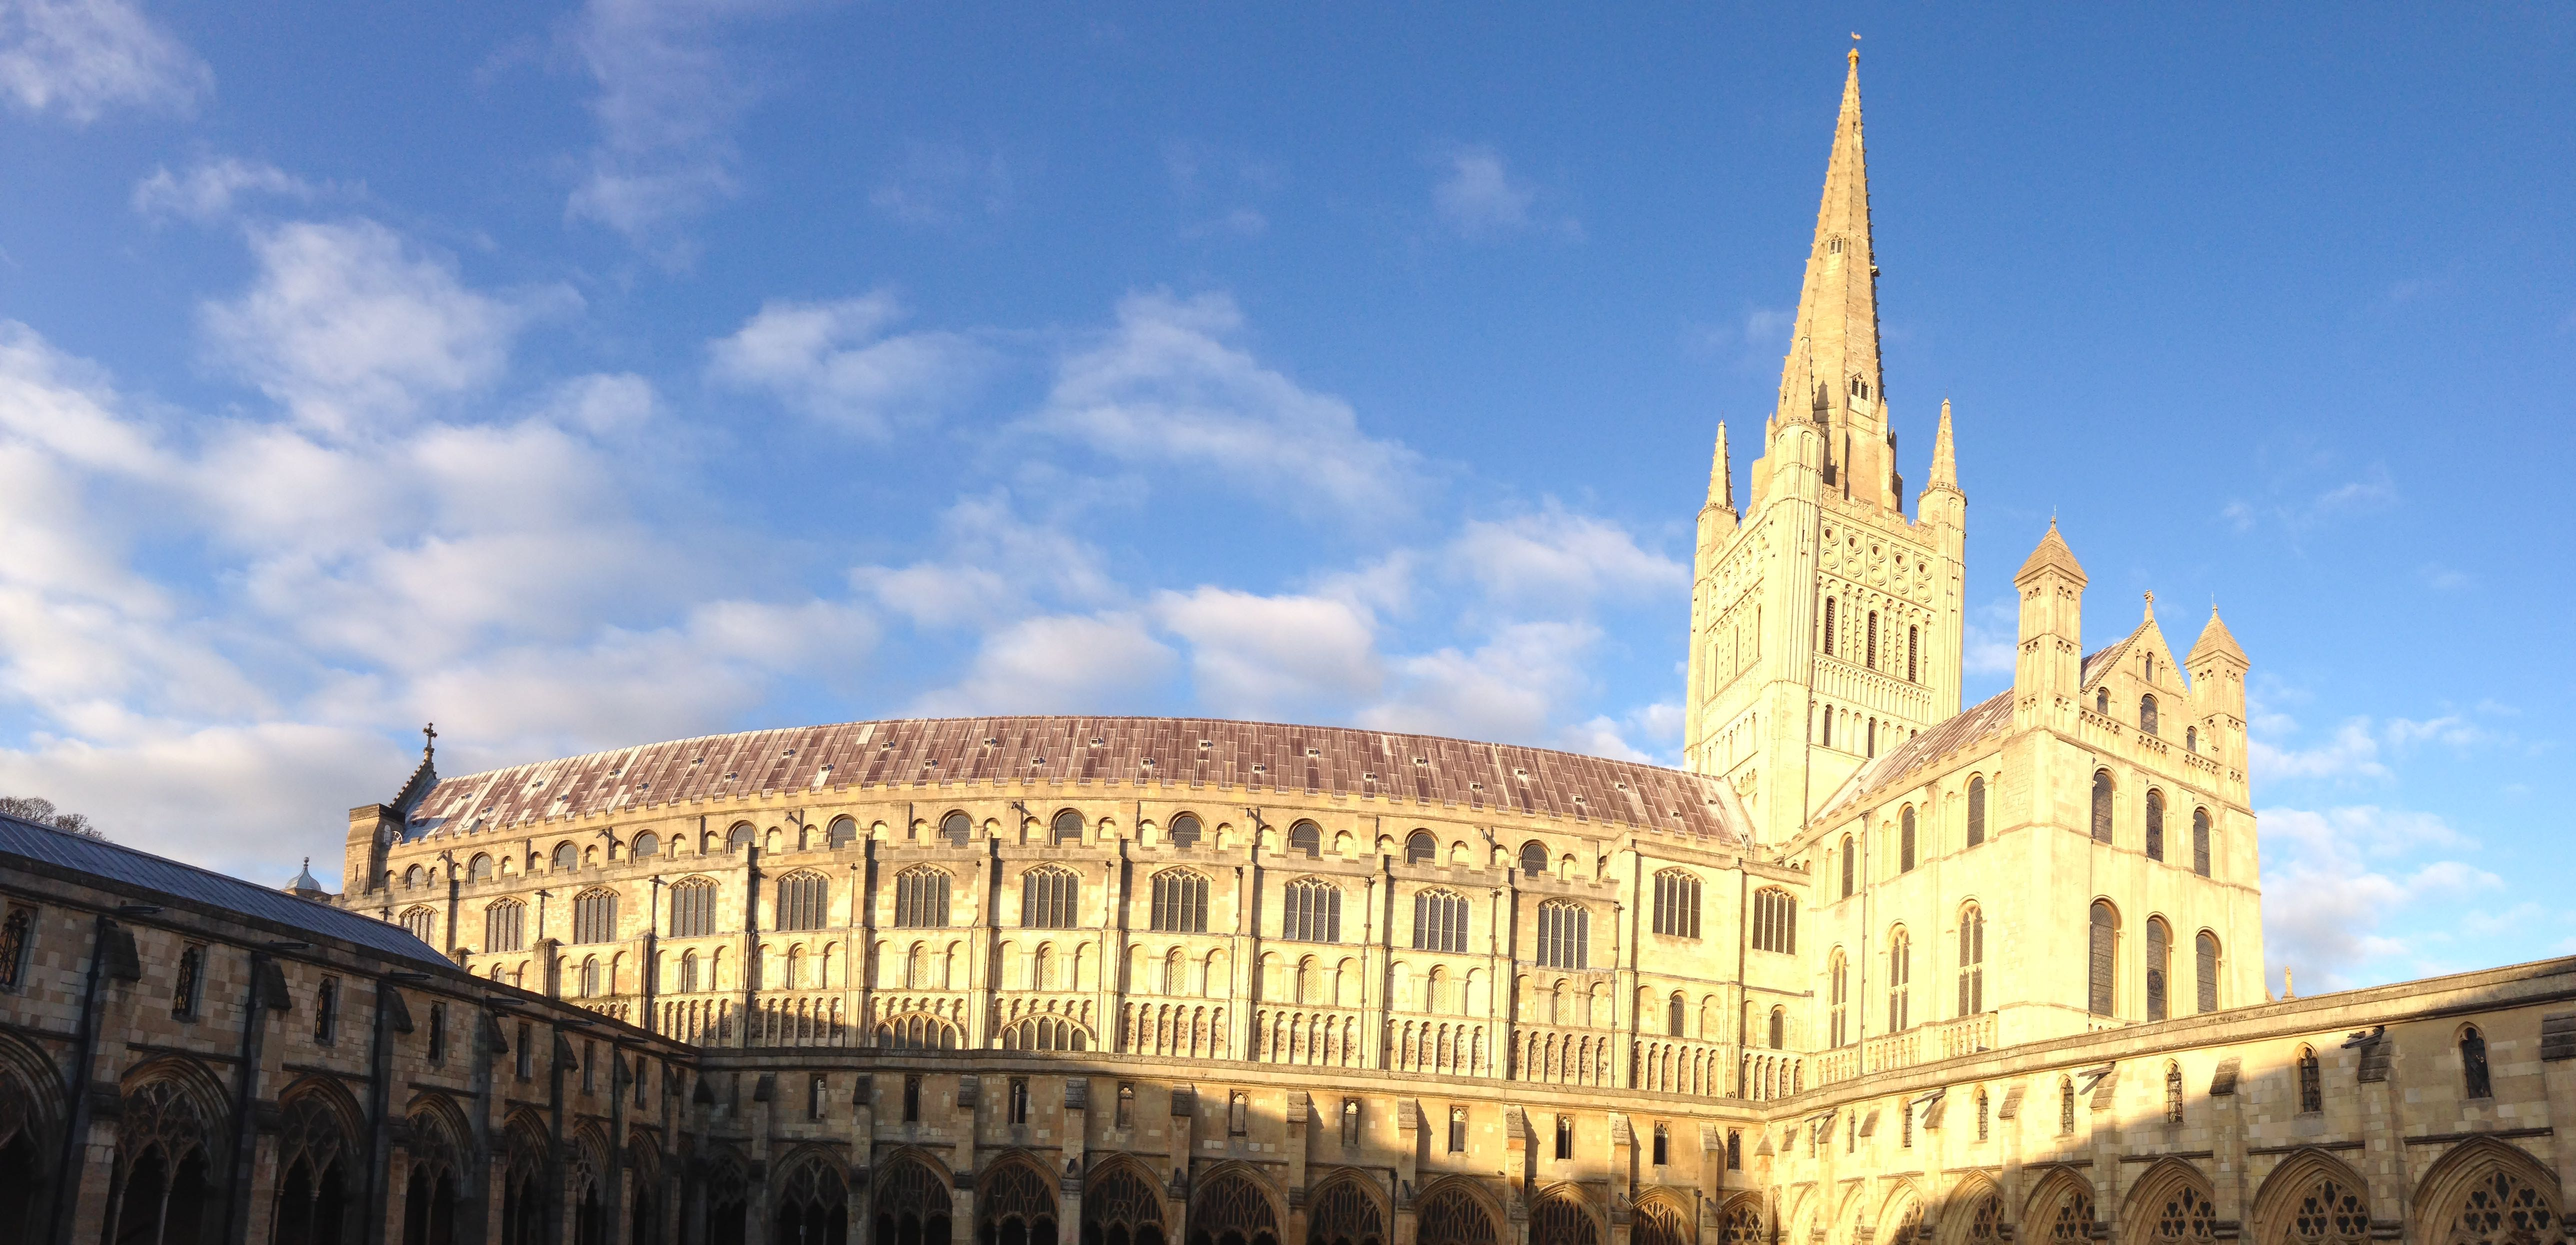 Norwich Cathedral Panarama Shot from the Cloisters